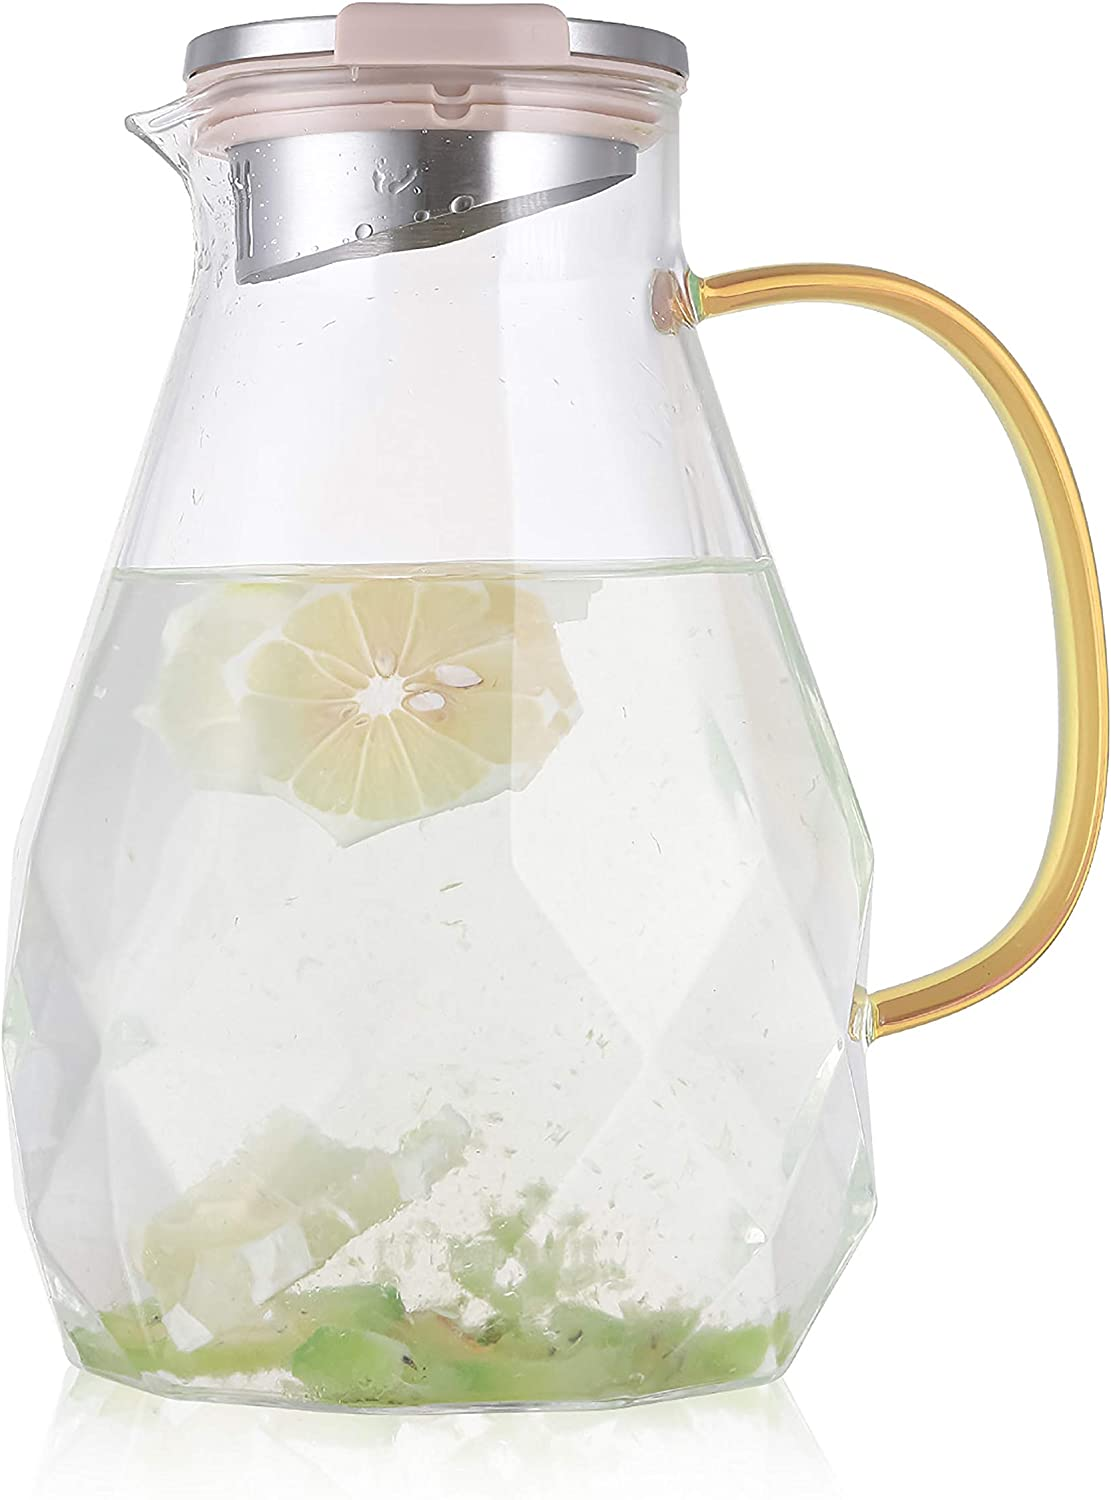 Cedilis 85 Ounces Glass Pitcher with Stainless Steel Lid, Diamond Pattern Water Carafe with Handle, Borosilicate Beverage Pitcher for Homemade Iced Tea, Juice and Cold & Hot Water